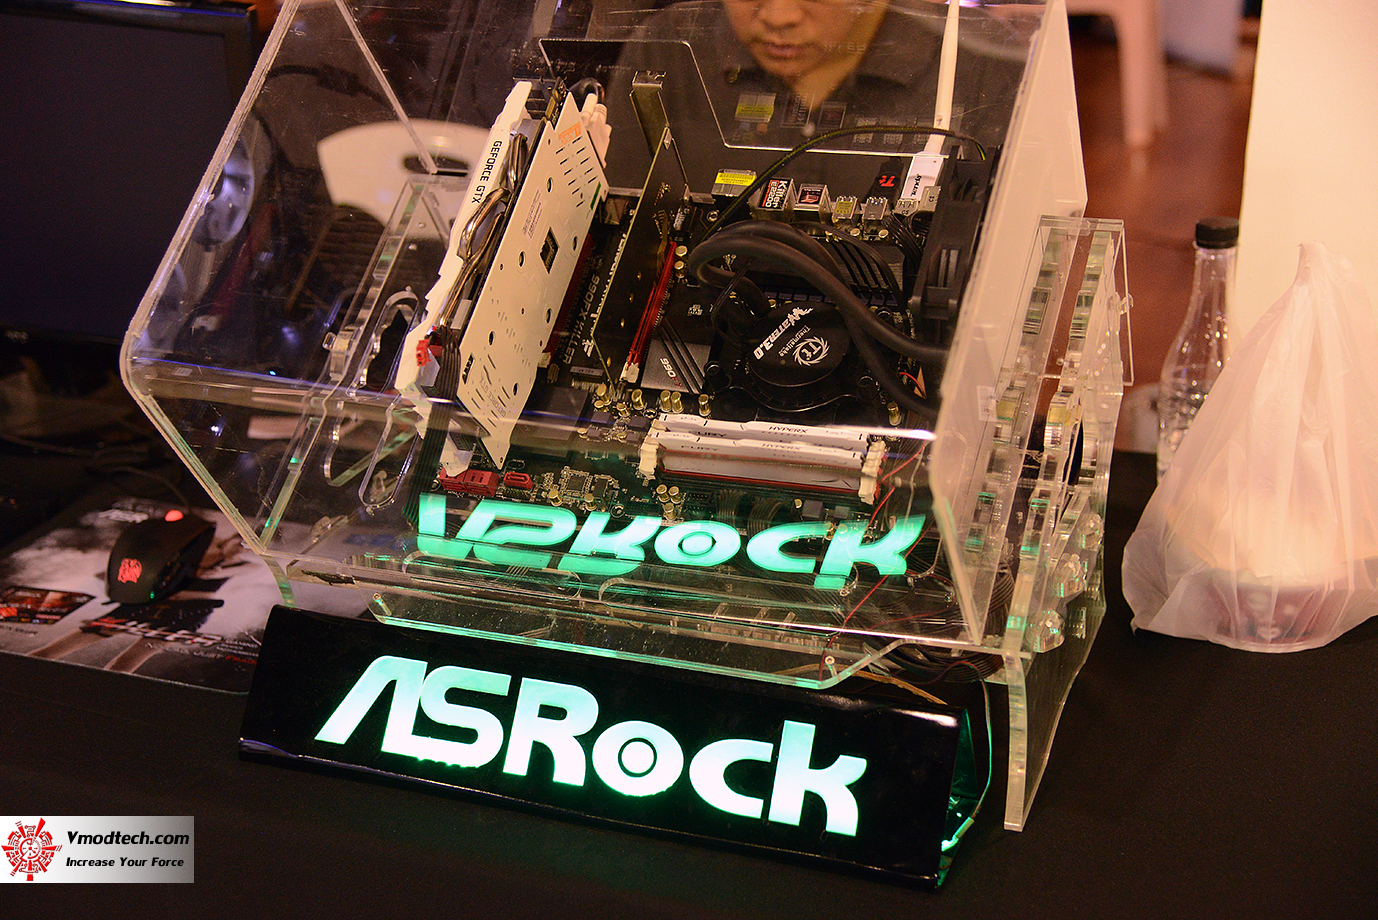 dsc 7766 AMD OMG! Party 2015 (AMD Overclock Modding Gaming Party 2015)